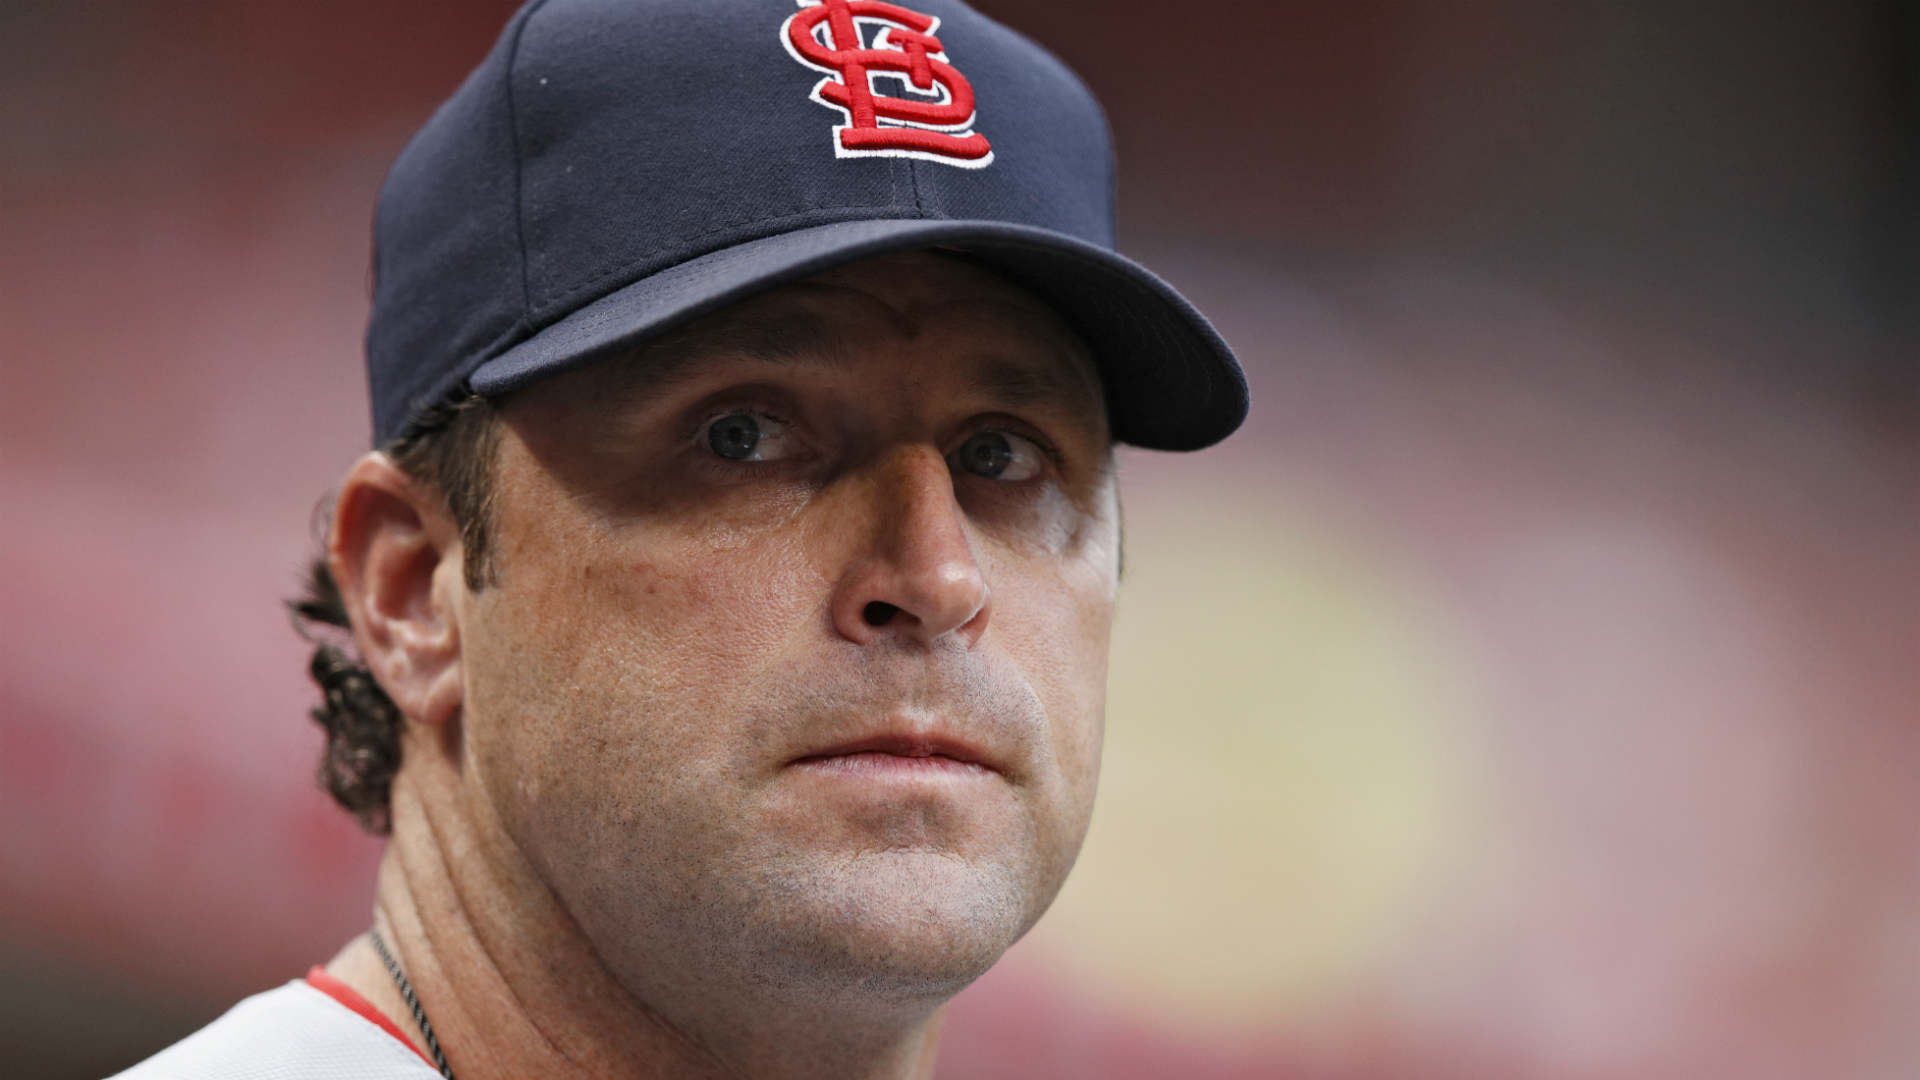 Mike-matheny-021418-usnews-getty-ftr_15vm04ihca1101wscq1ar73f7o